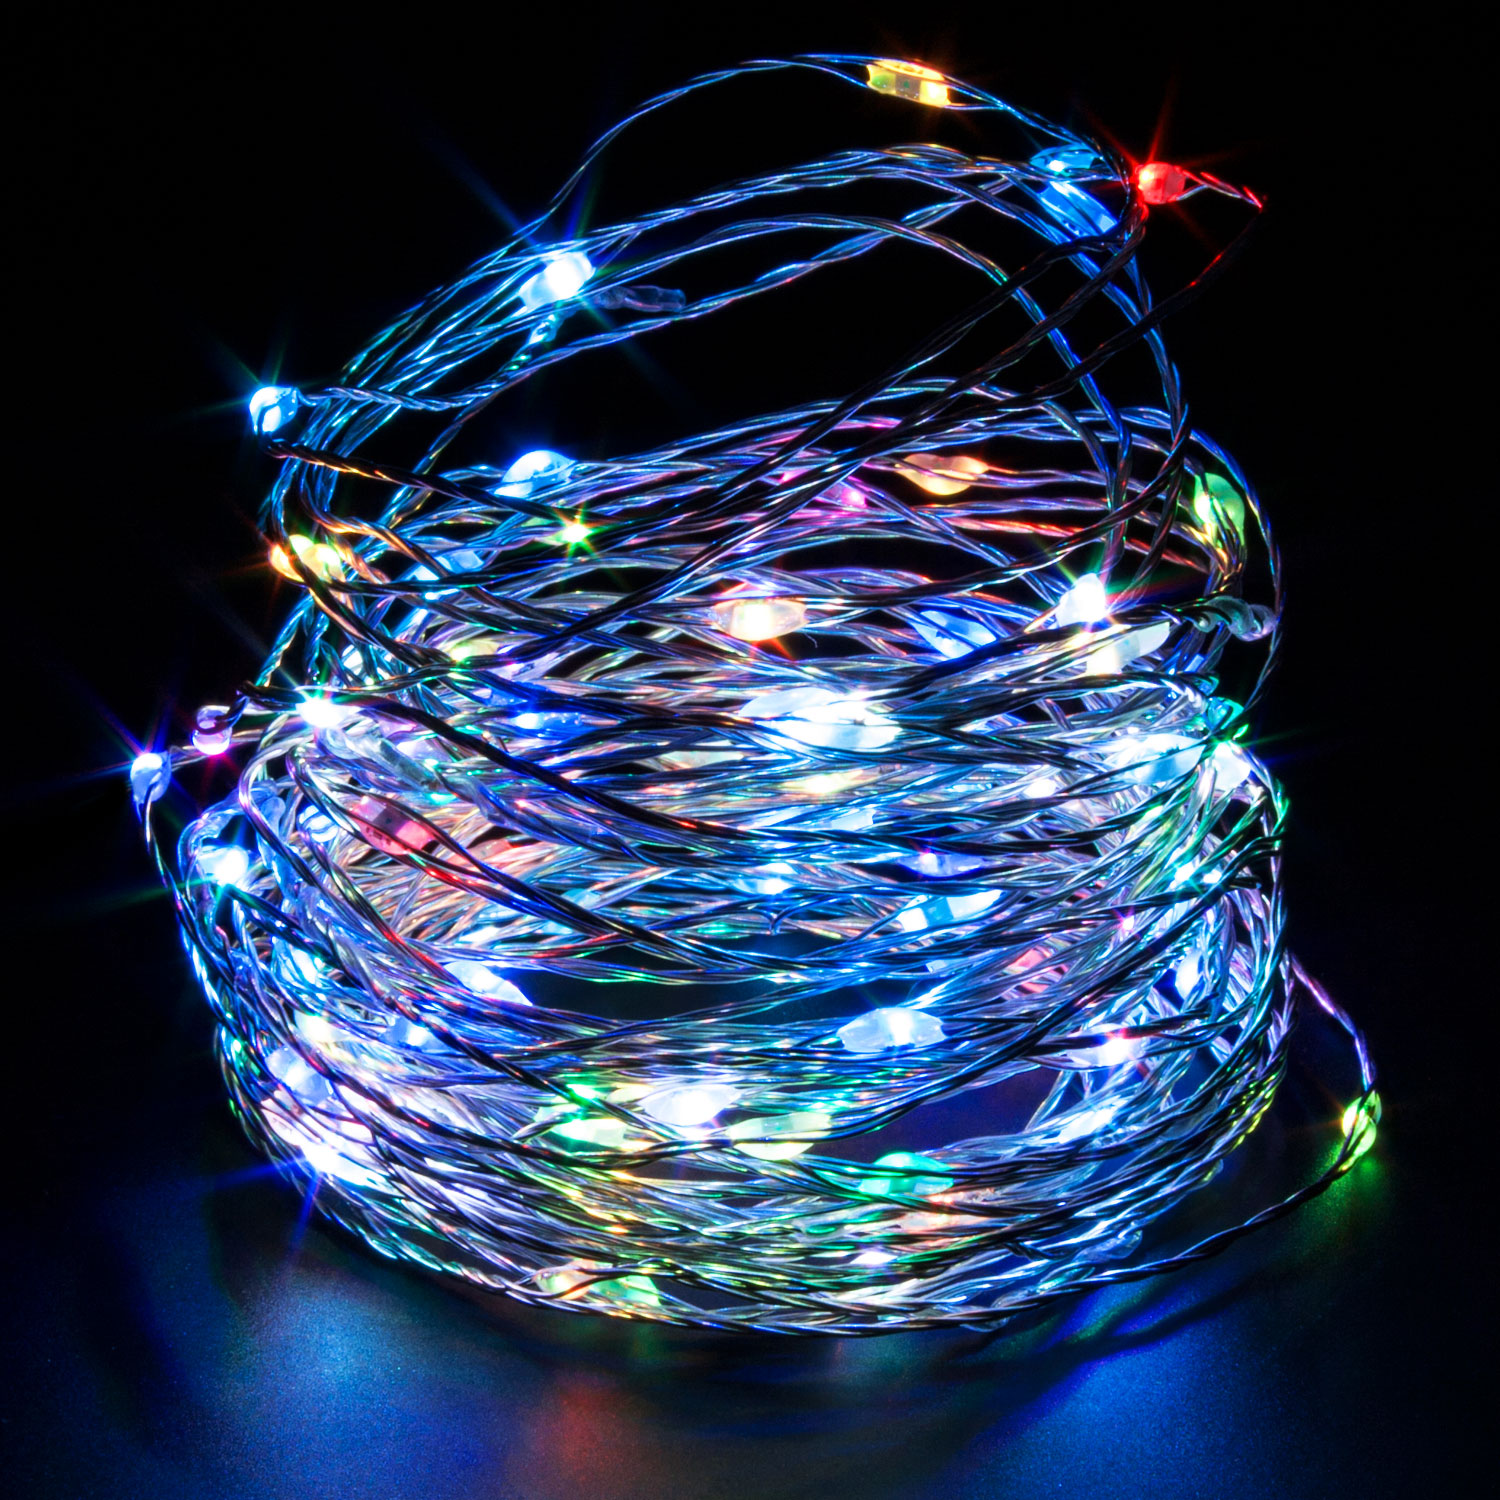 Rgb Led String Light 32ft Christmas Wiring Diagram 3 Wire Additionally